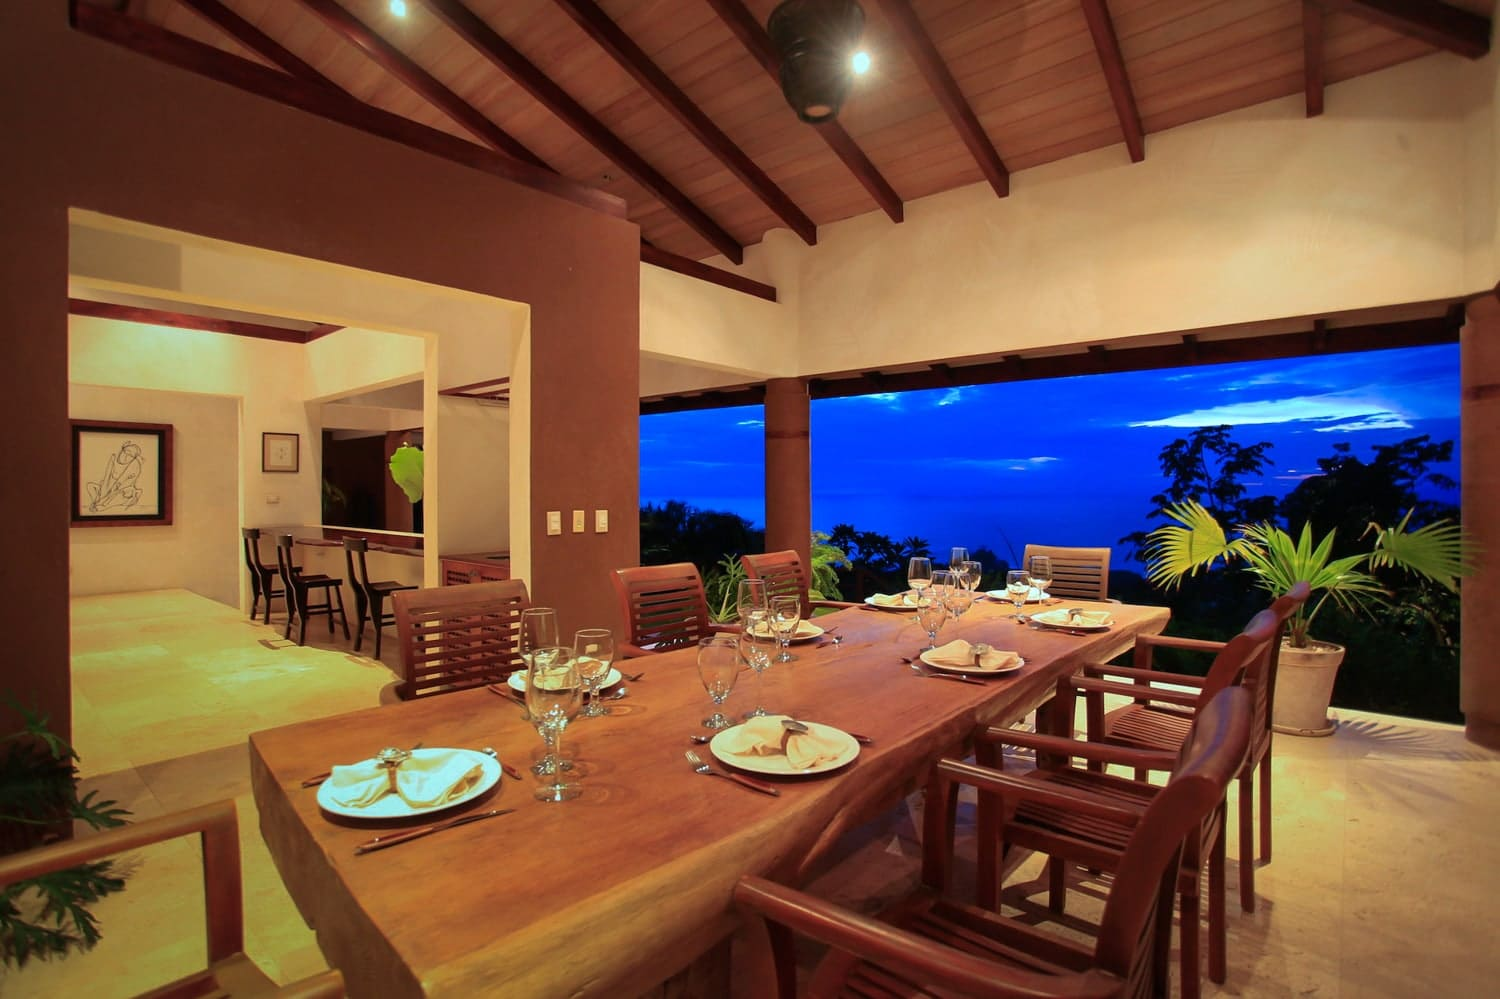 Inside dining are for wedding receptions with marvelous rainforest and ocean views at Ocio Villas, Mal Pais.